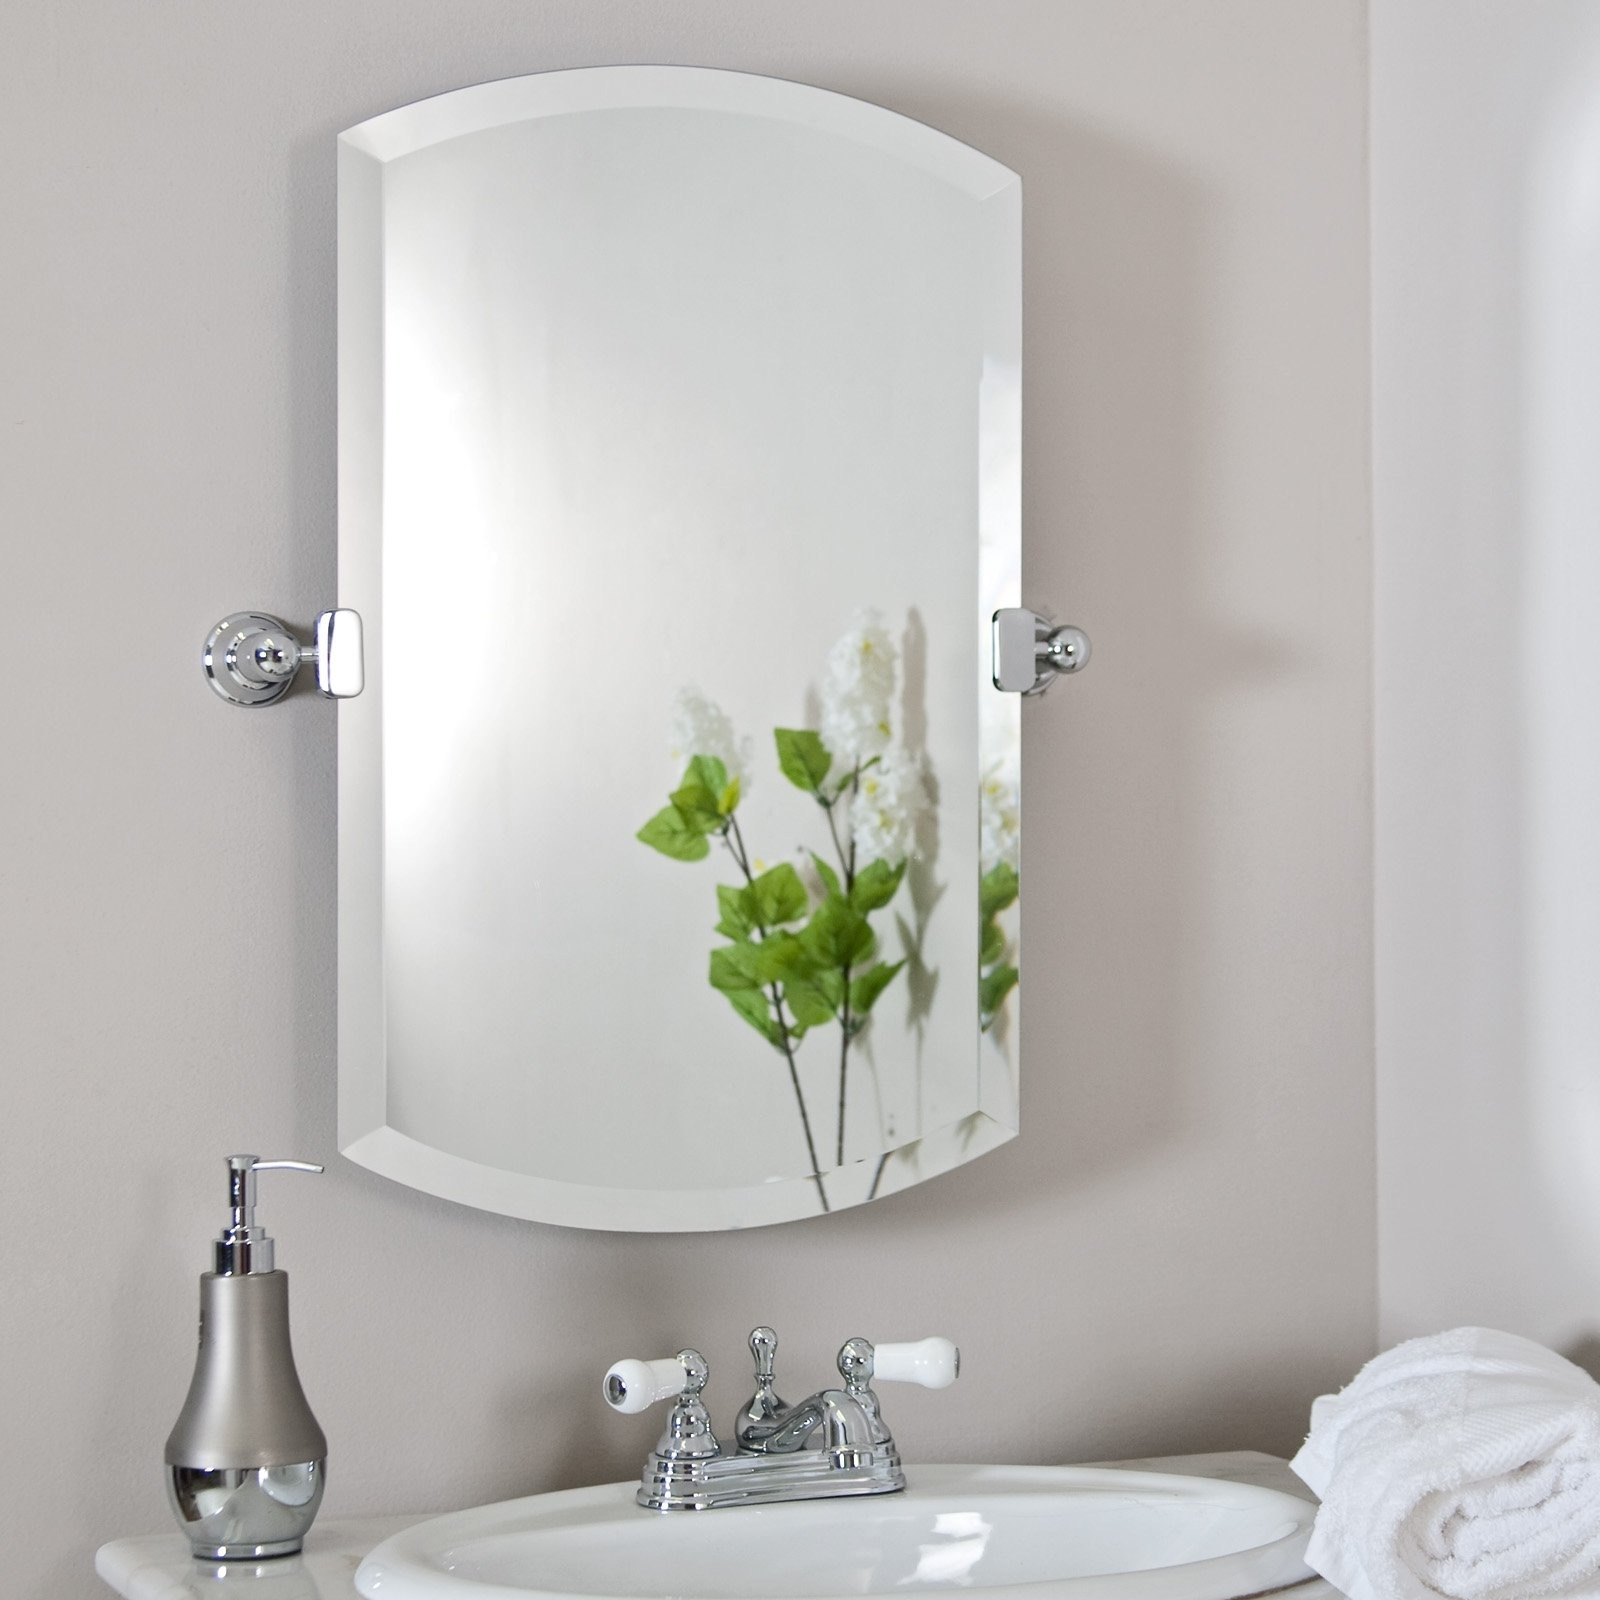 Super Ideas Bathroom Mirror Design 13 Mesmerizing Mirrors For A Throughout Bright Coloured Mirrors (Image 14 of 15)